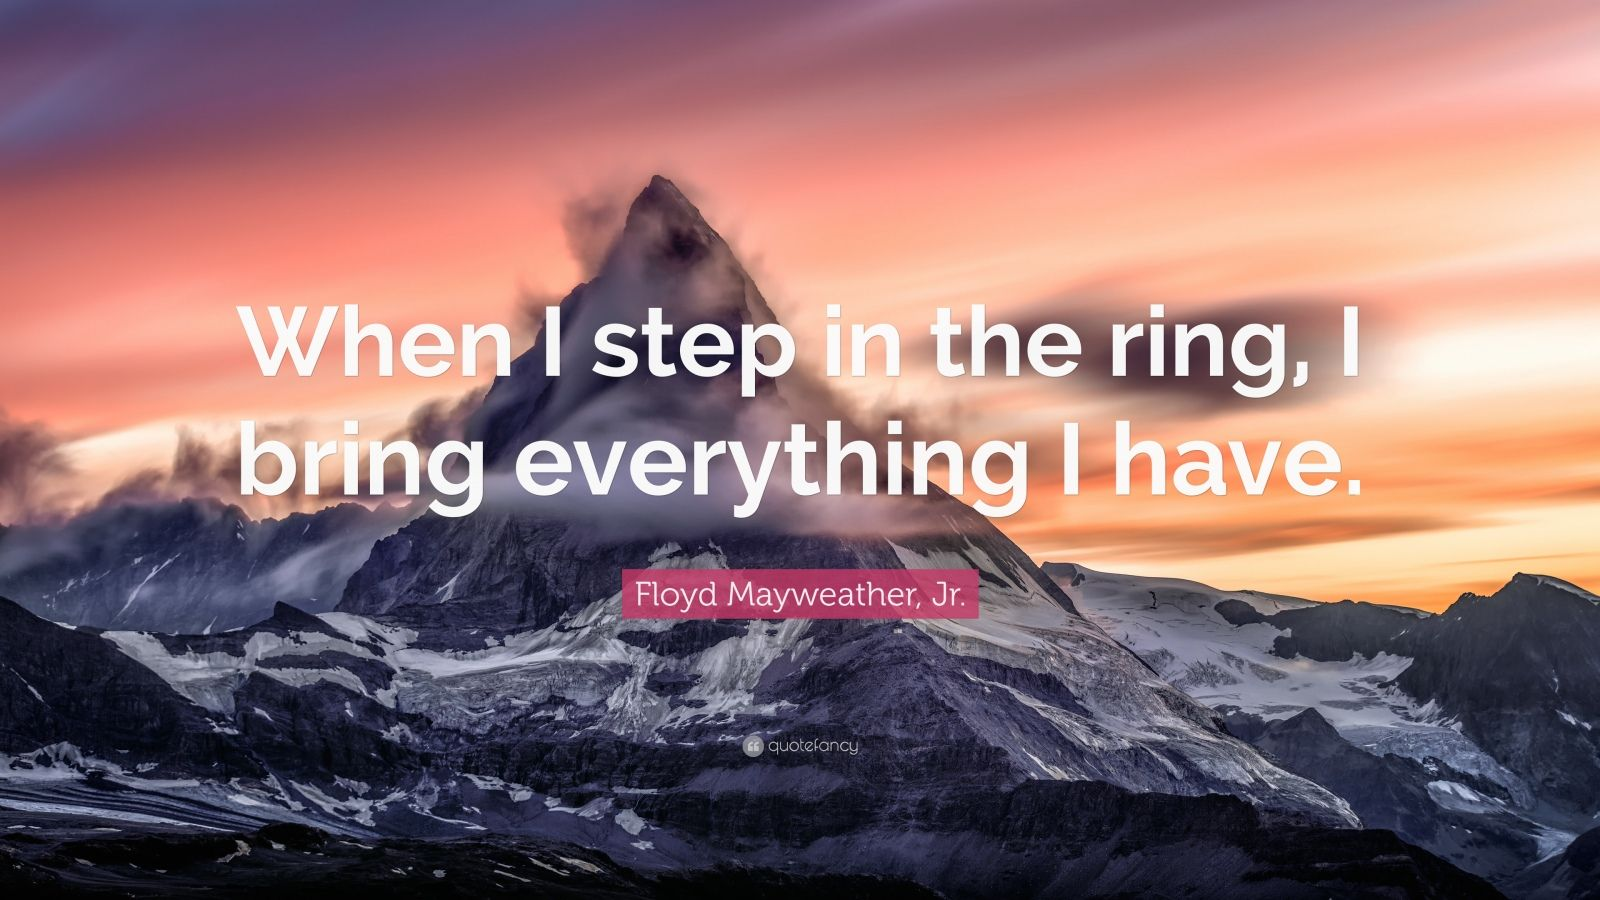 """Floyd Mayweather, Jr. Quote: """"When I step in the ring, I bring everything I have."""""""